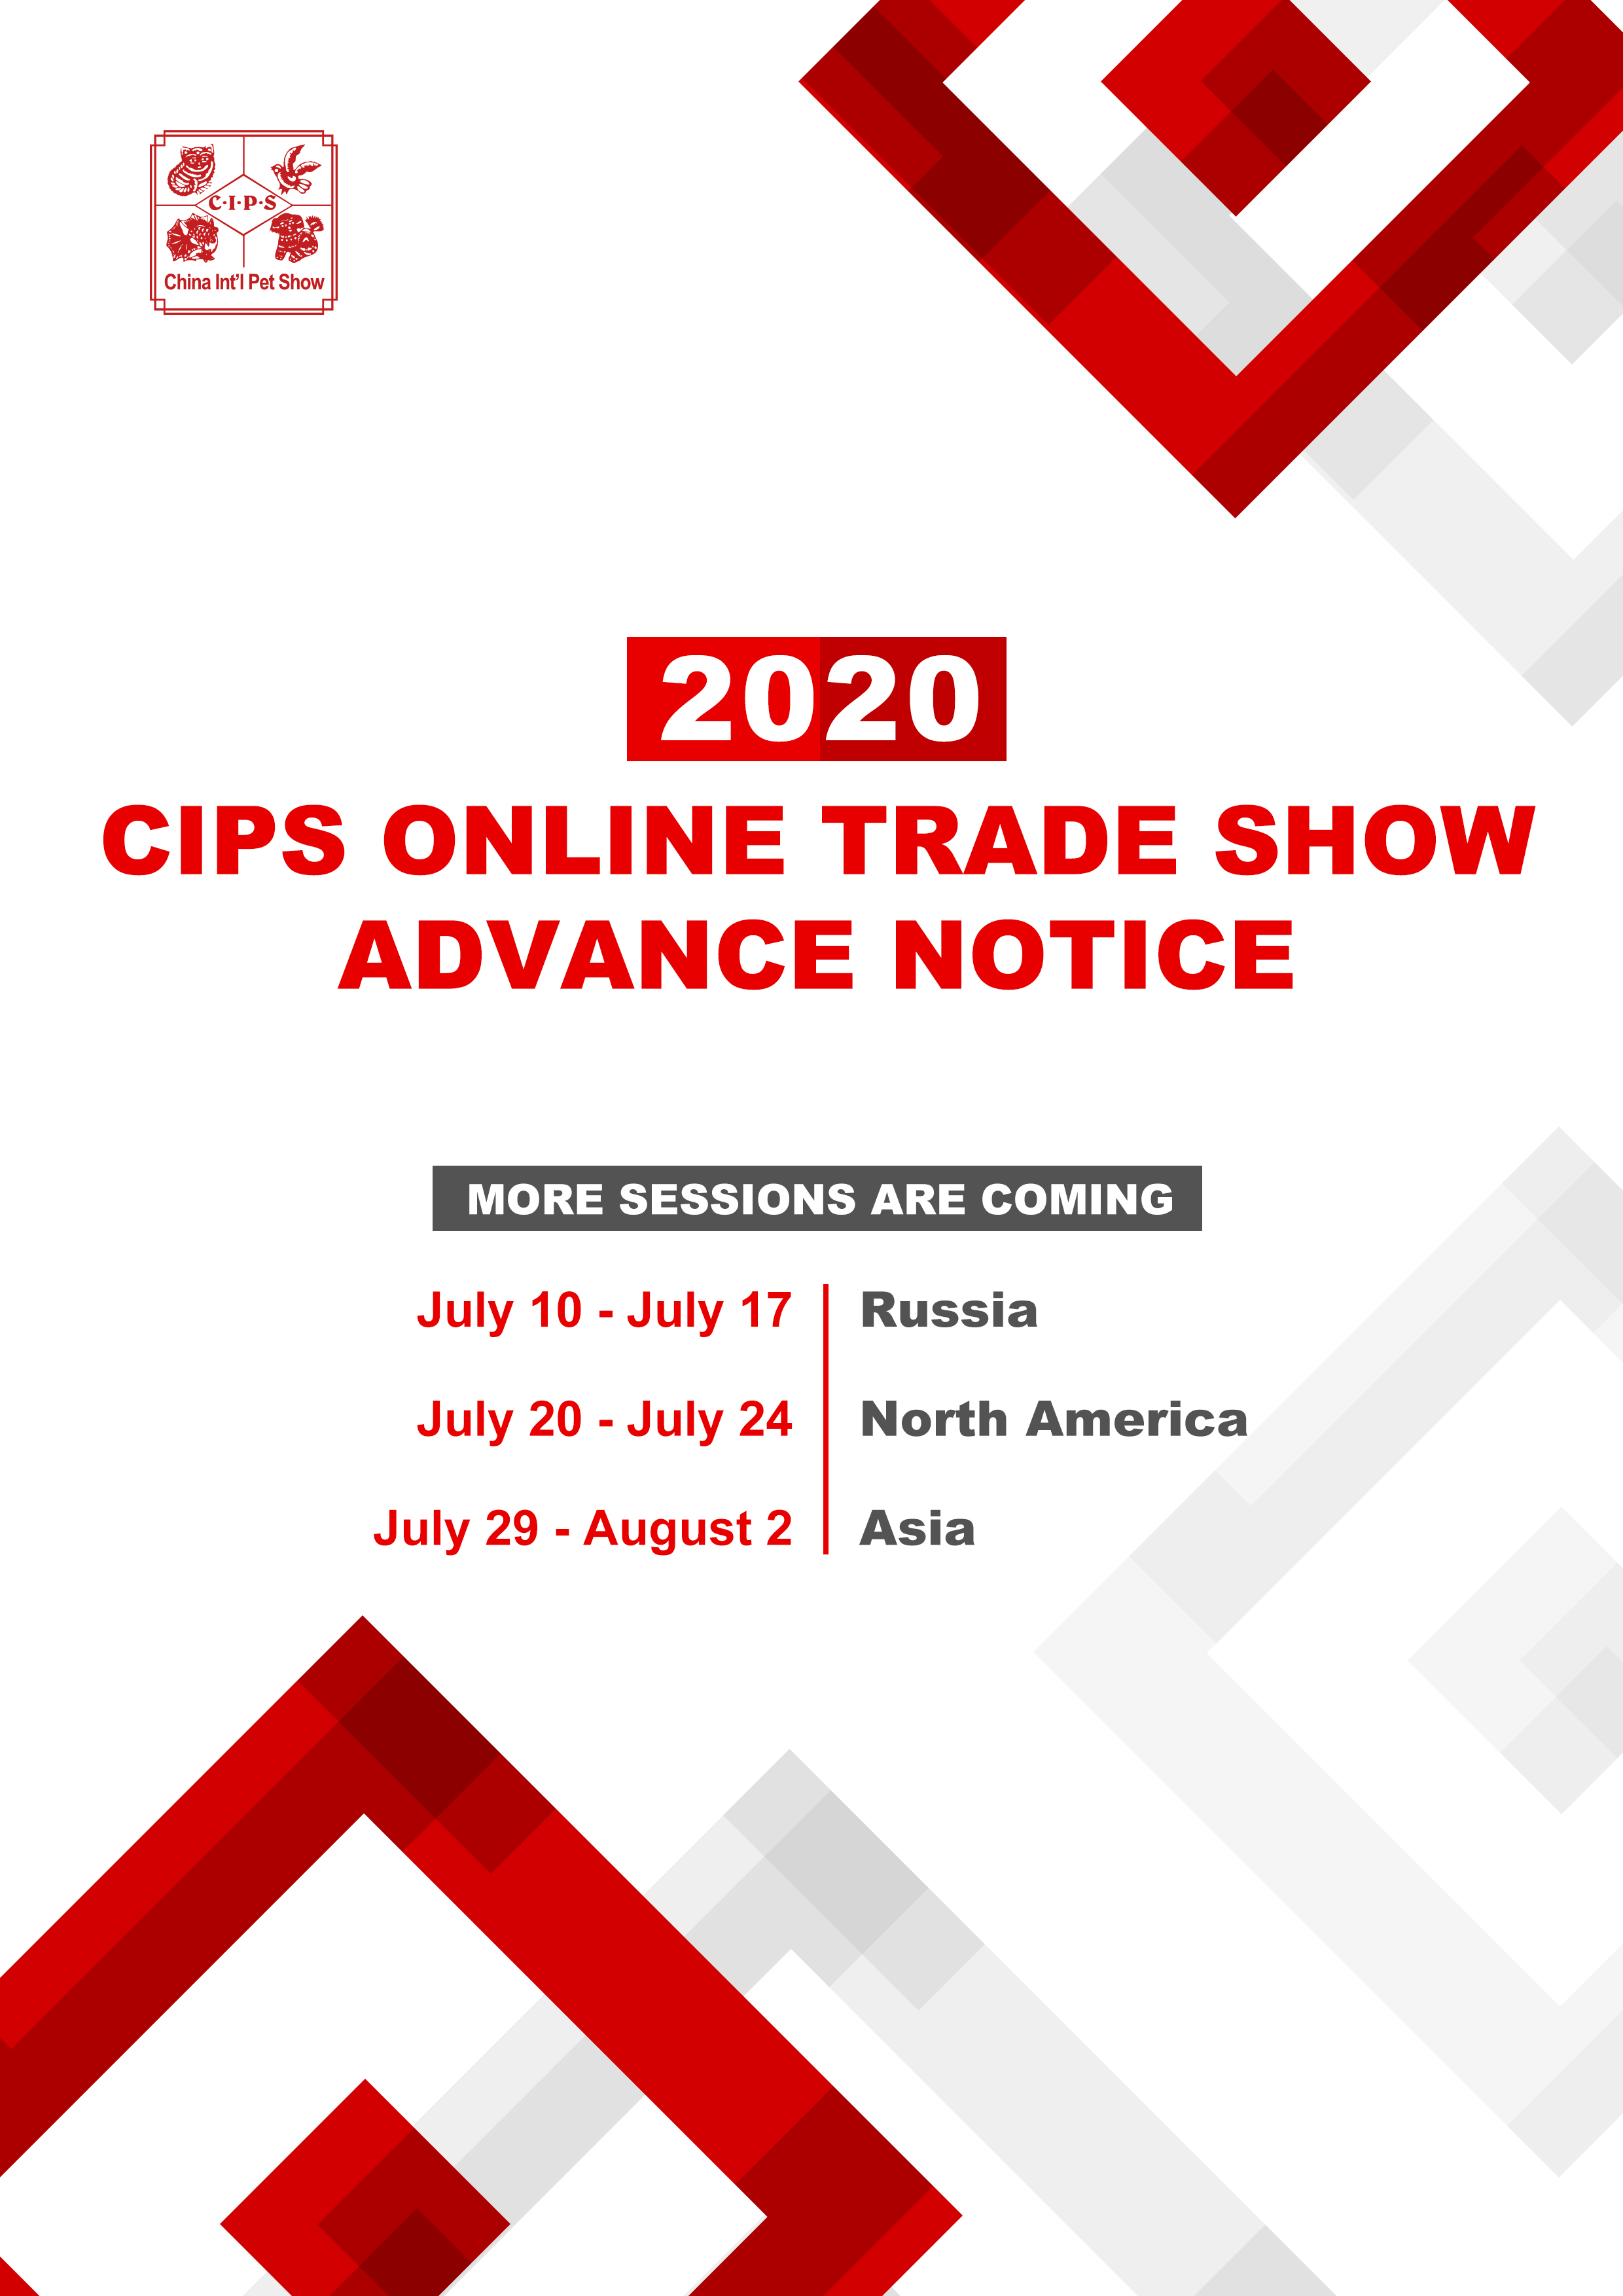 More sessions are coming of CIPS Online Trade Show